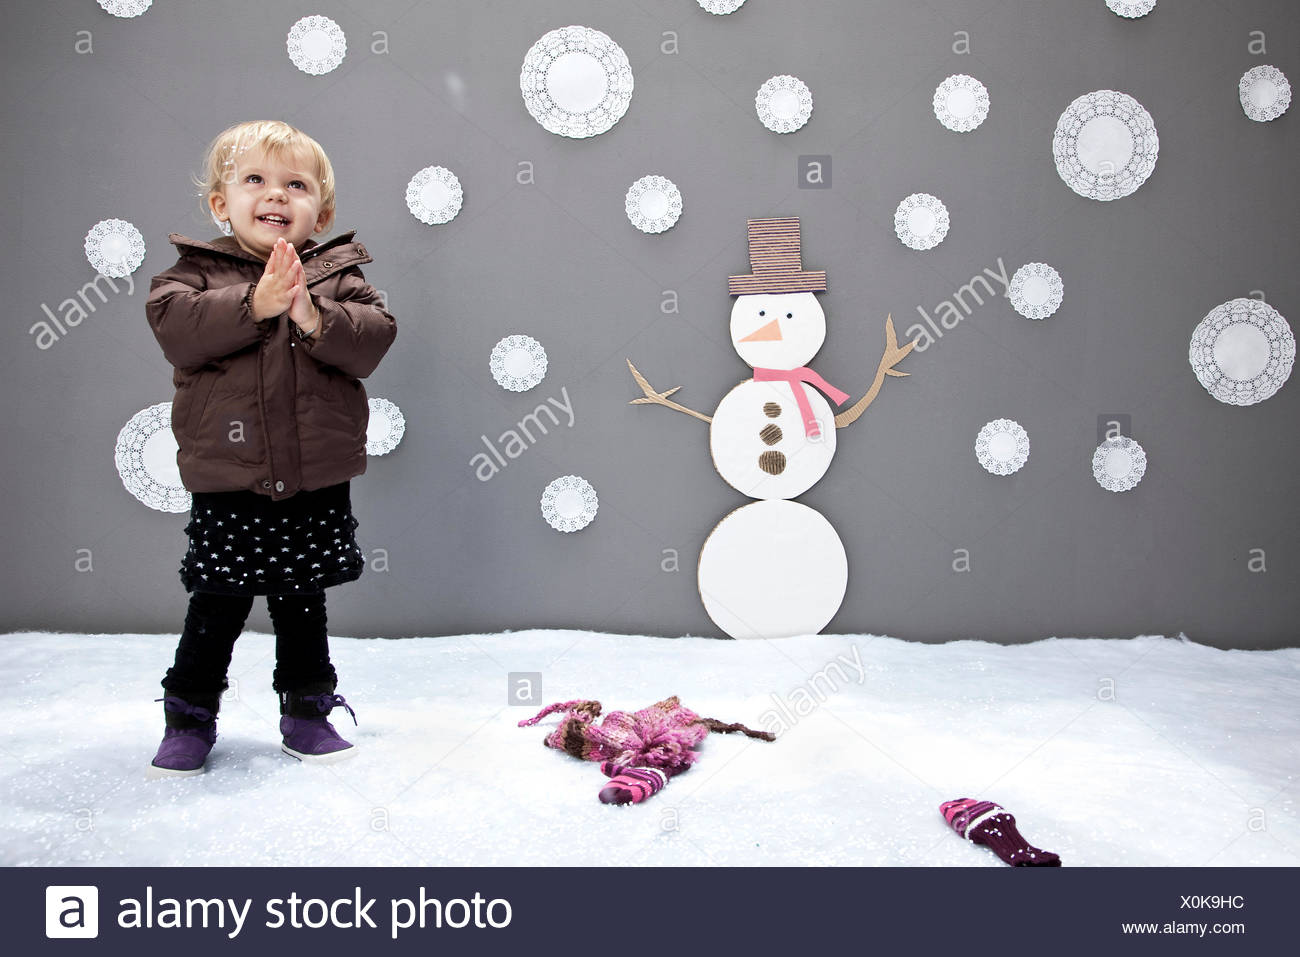 Baby girl with snowman and snowflake cutouts - Stock Image